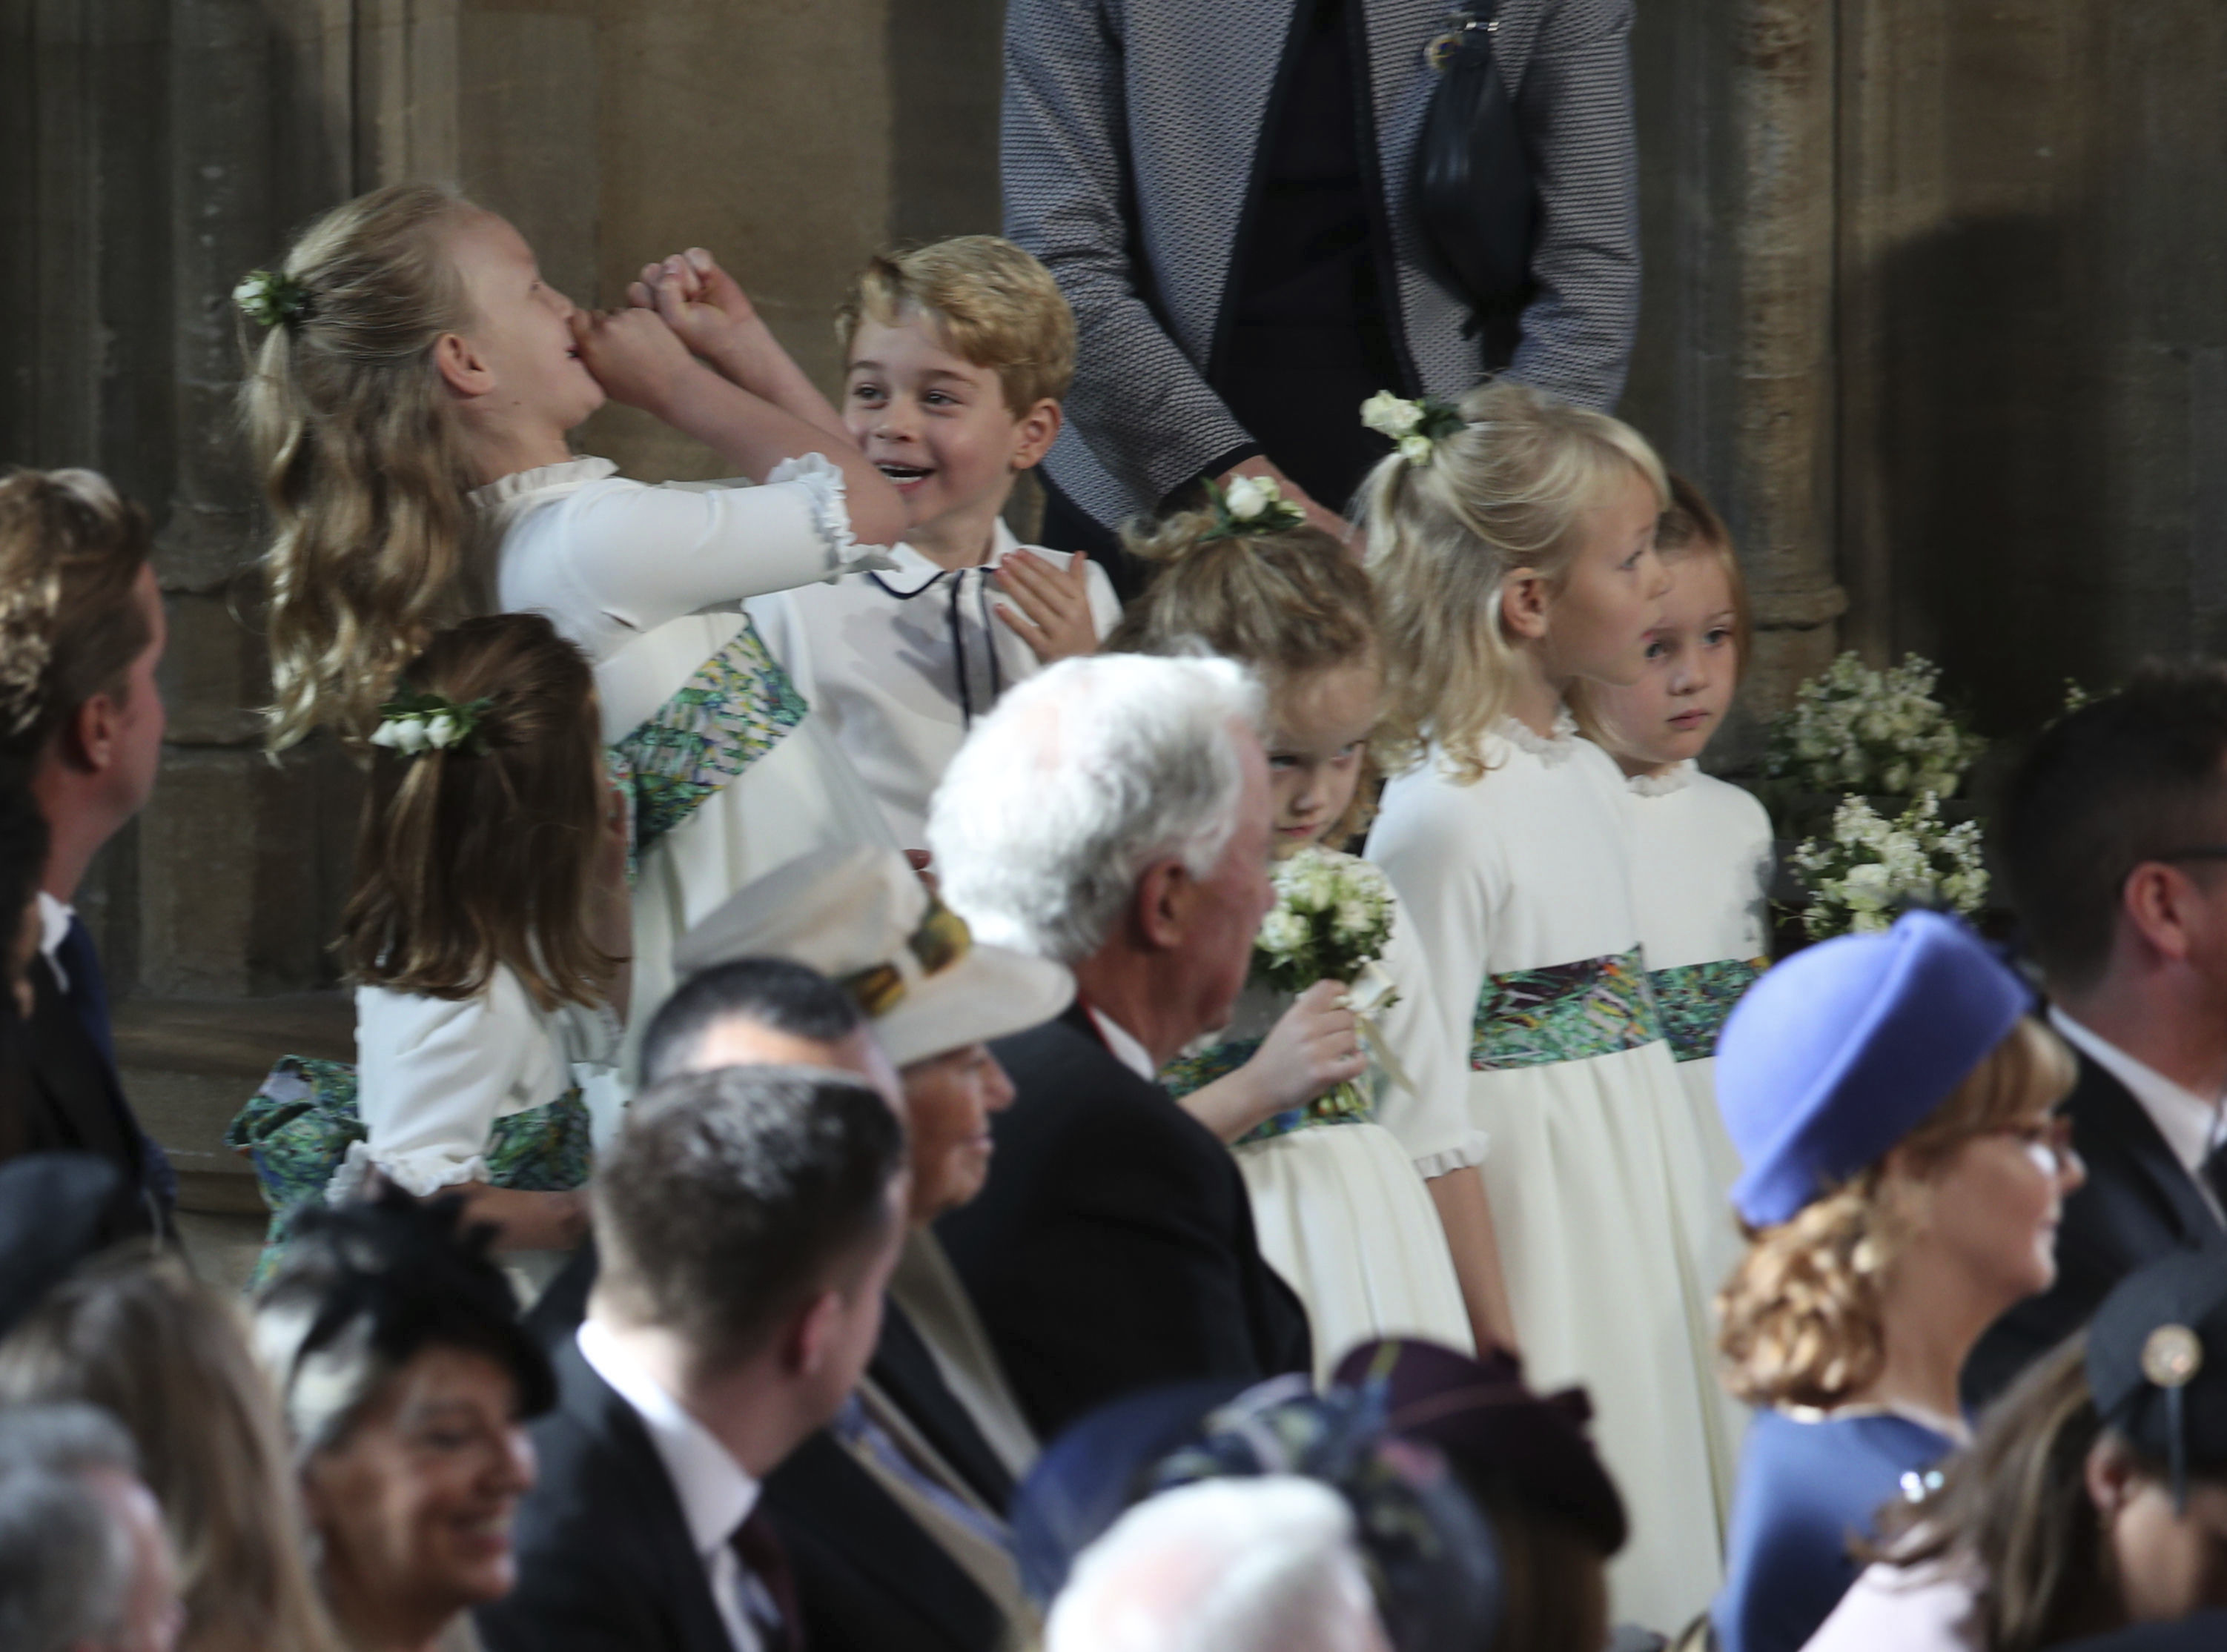 <div class='meta'><div class='origin-logo' data-origin='none'></div><span class='caption-text' data-credit='Yui Mok, Pool via AP'>The bridesmaids and page boys, including Prince George and Princess Charlotte, arrive for the wedding of Princess Eugenie of York and Jack Brooksbank in St George'€™s Chapel.</span></div>